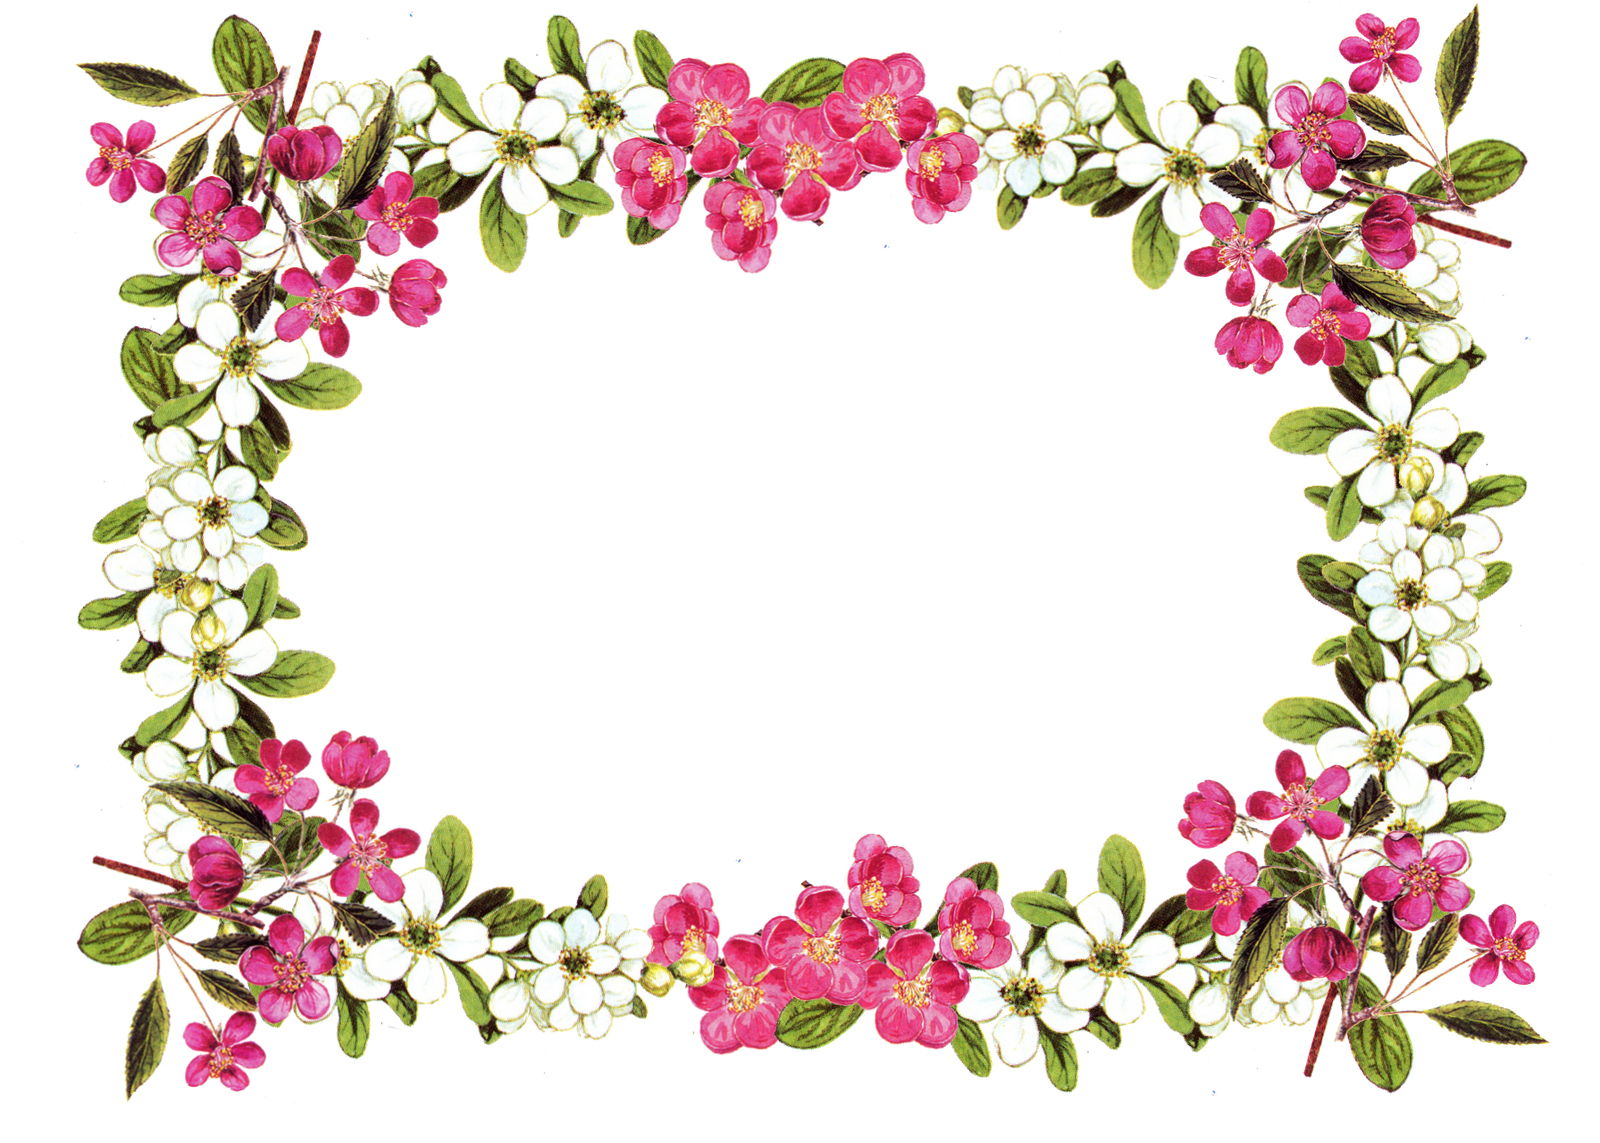 pin by adele gilmore on wow pinterest borders free flower frame rh pinterest com clip art flower borders black and white clip art flower borders free